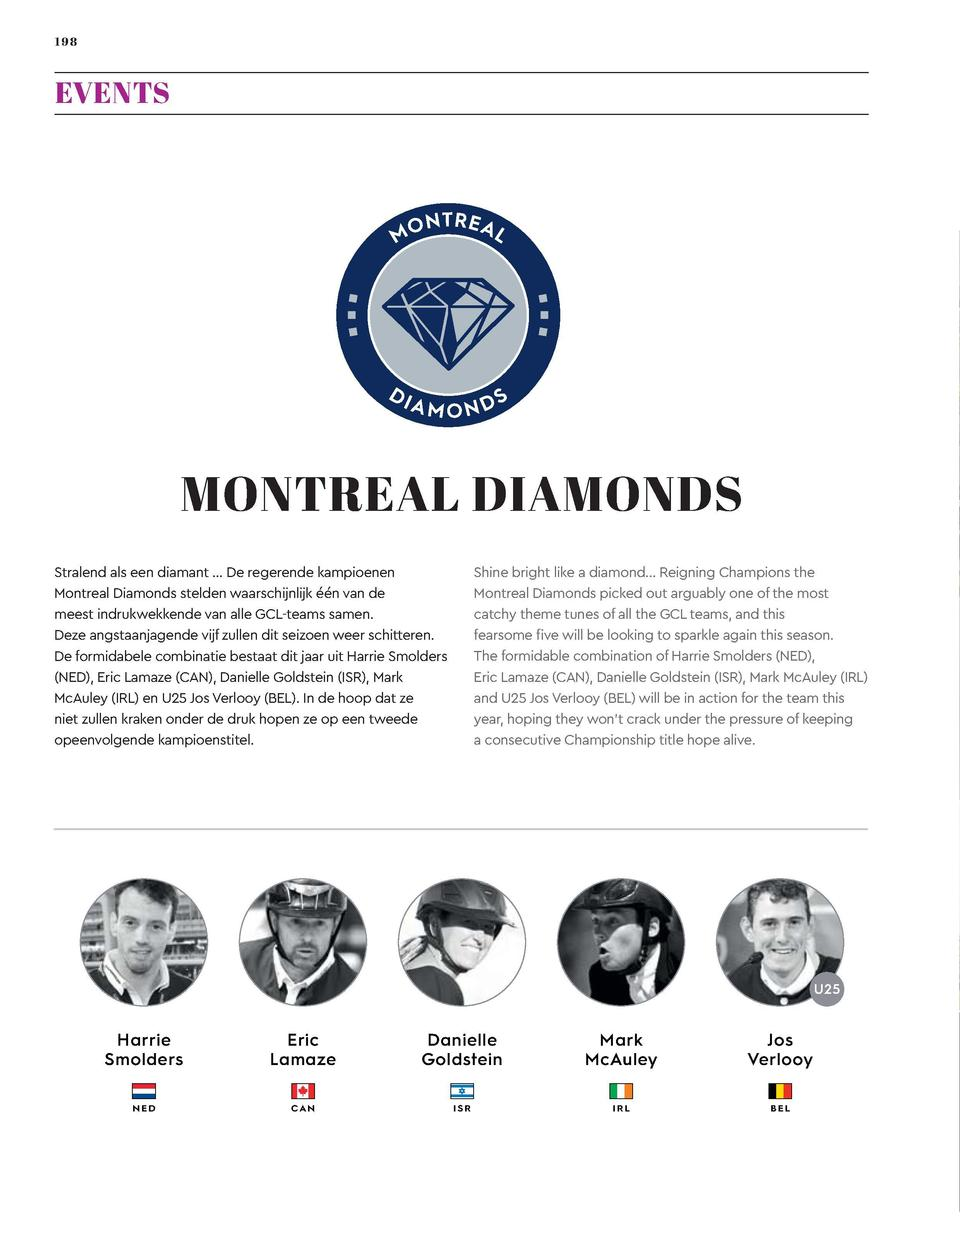 198  199  EVENTS  MONTREAL DIAMONDS Shine bright like a diamond    Reigning Champions the Montreal Diamonds picked out arg...